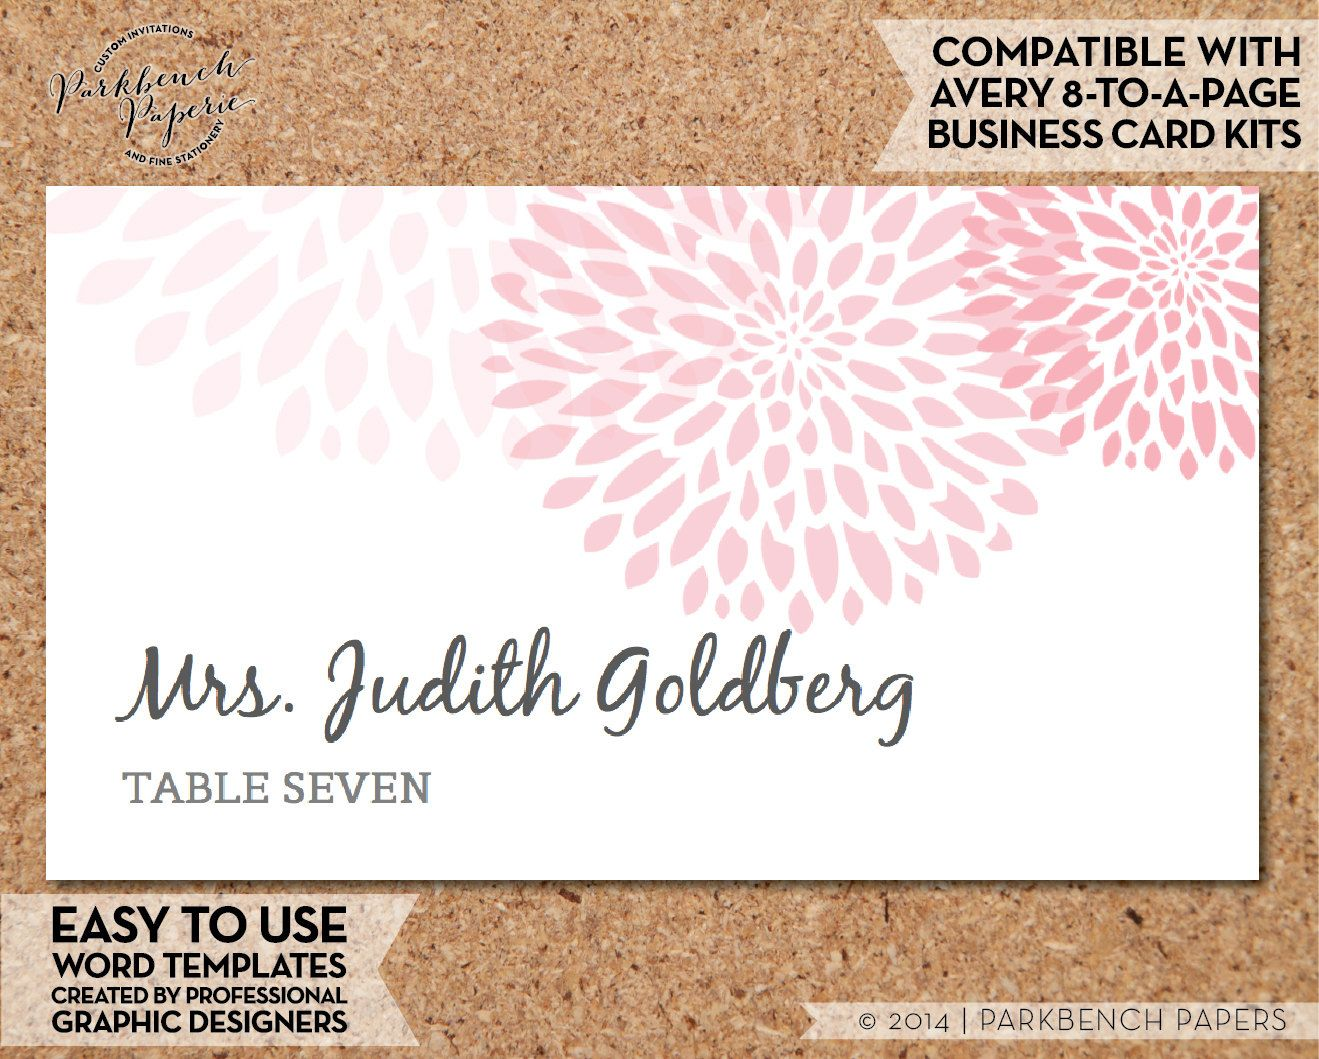 Place Card Template - Mums - BLUSH - DIY Editable Word Template ...